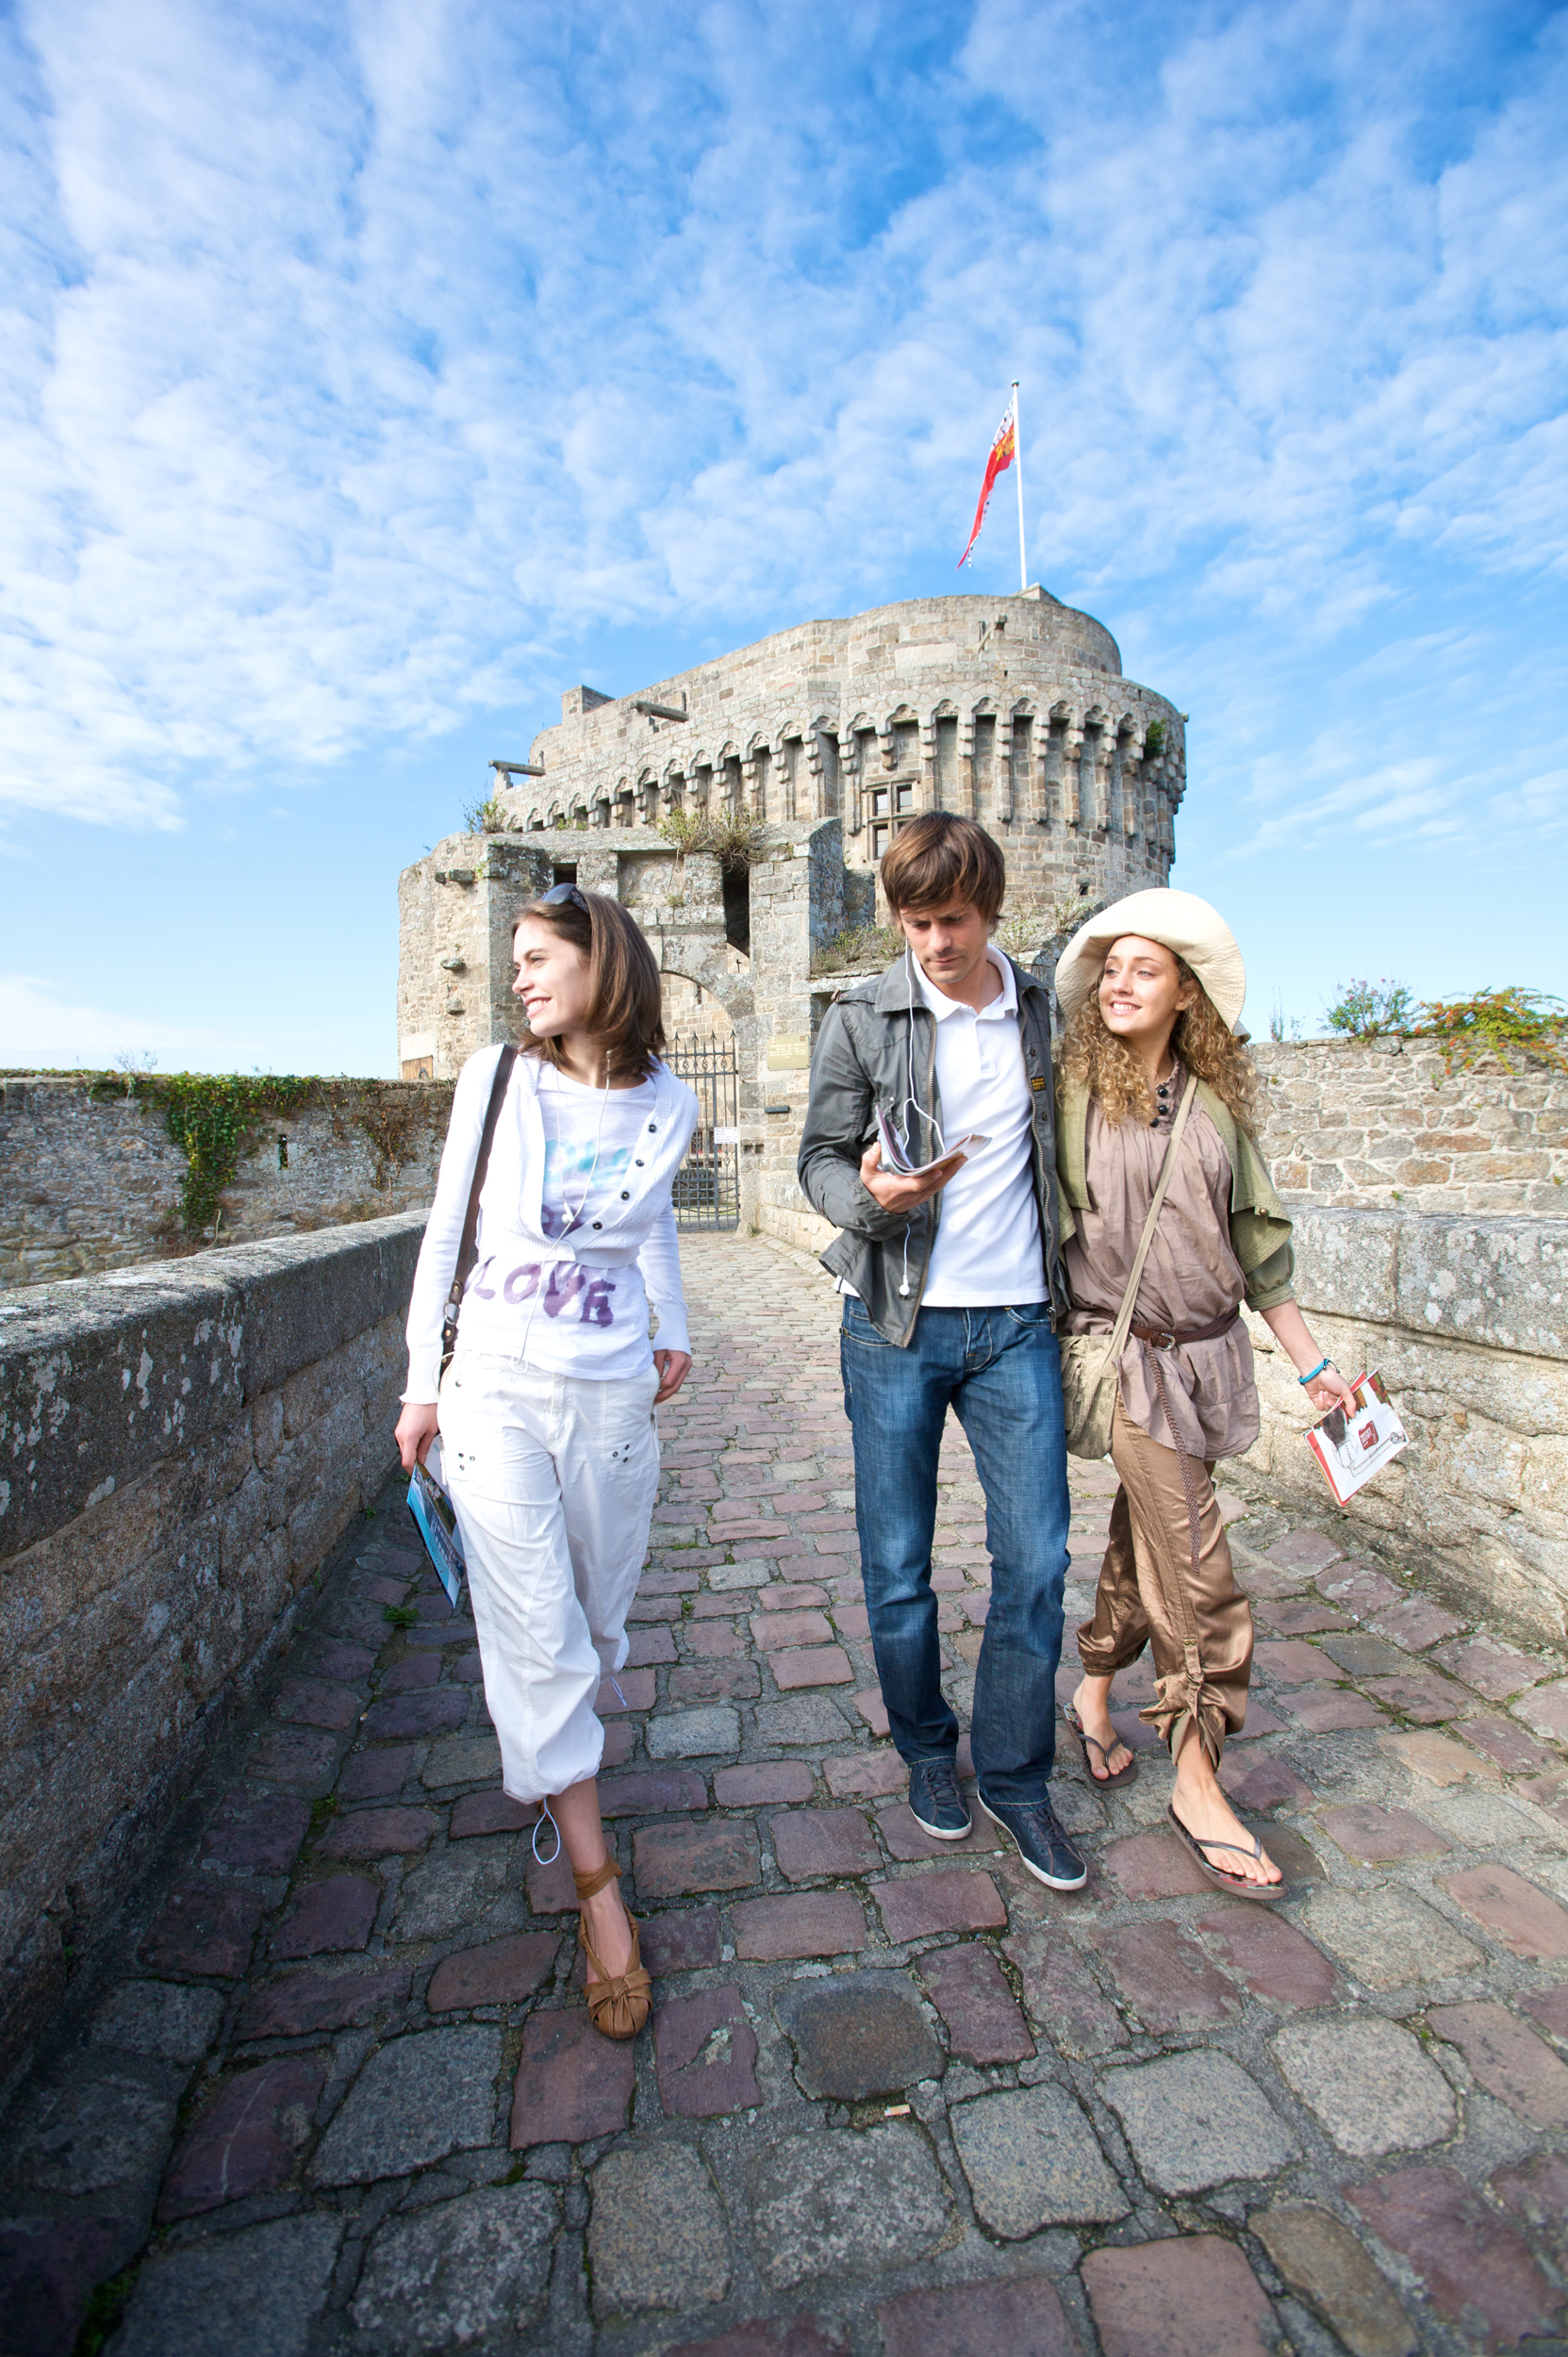 Begin the exploration of Saint-Malo by walking the town wall taking in the views of the city and sea on either side.